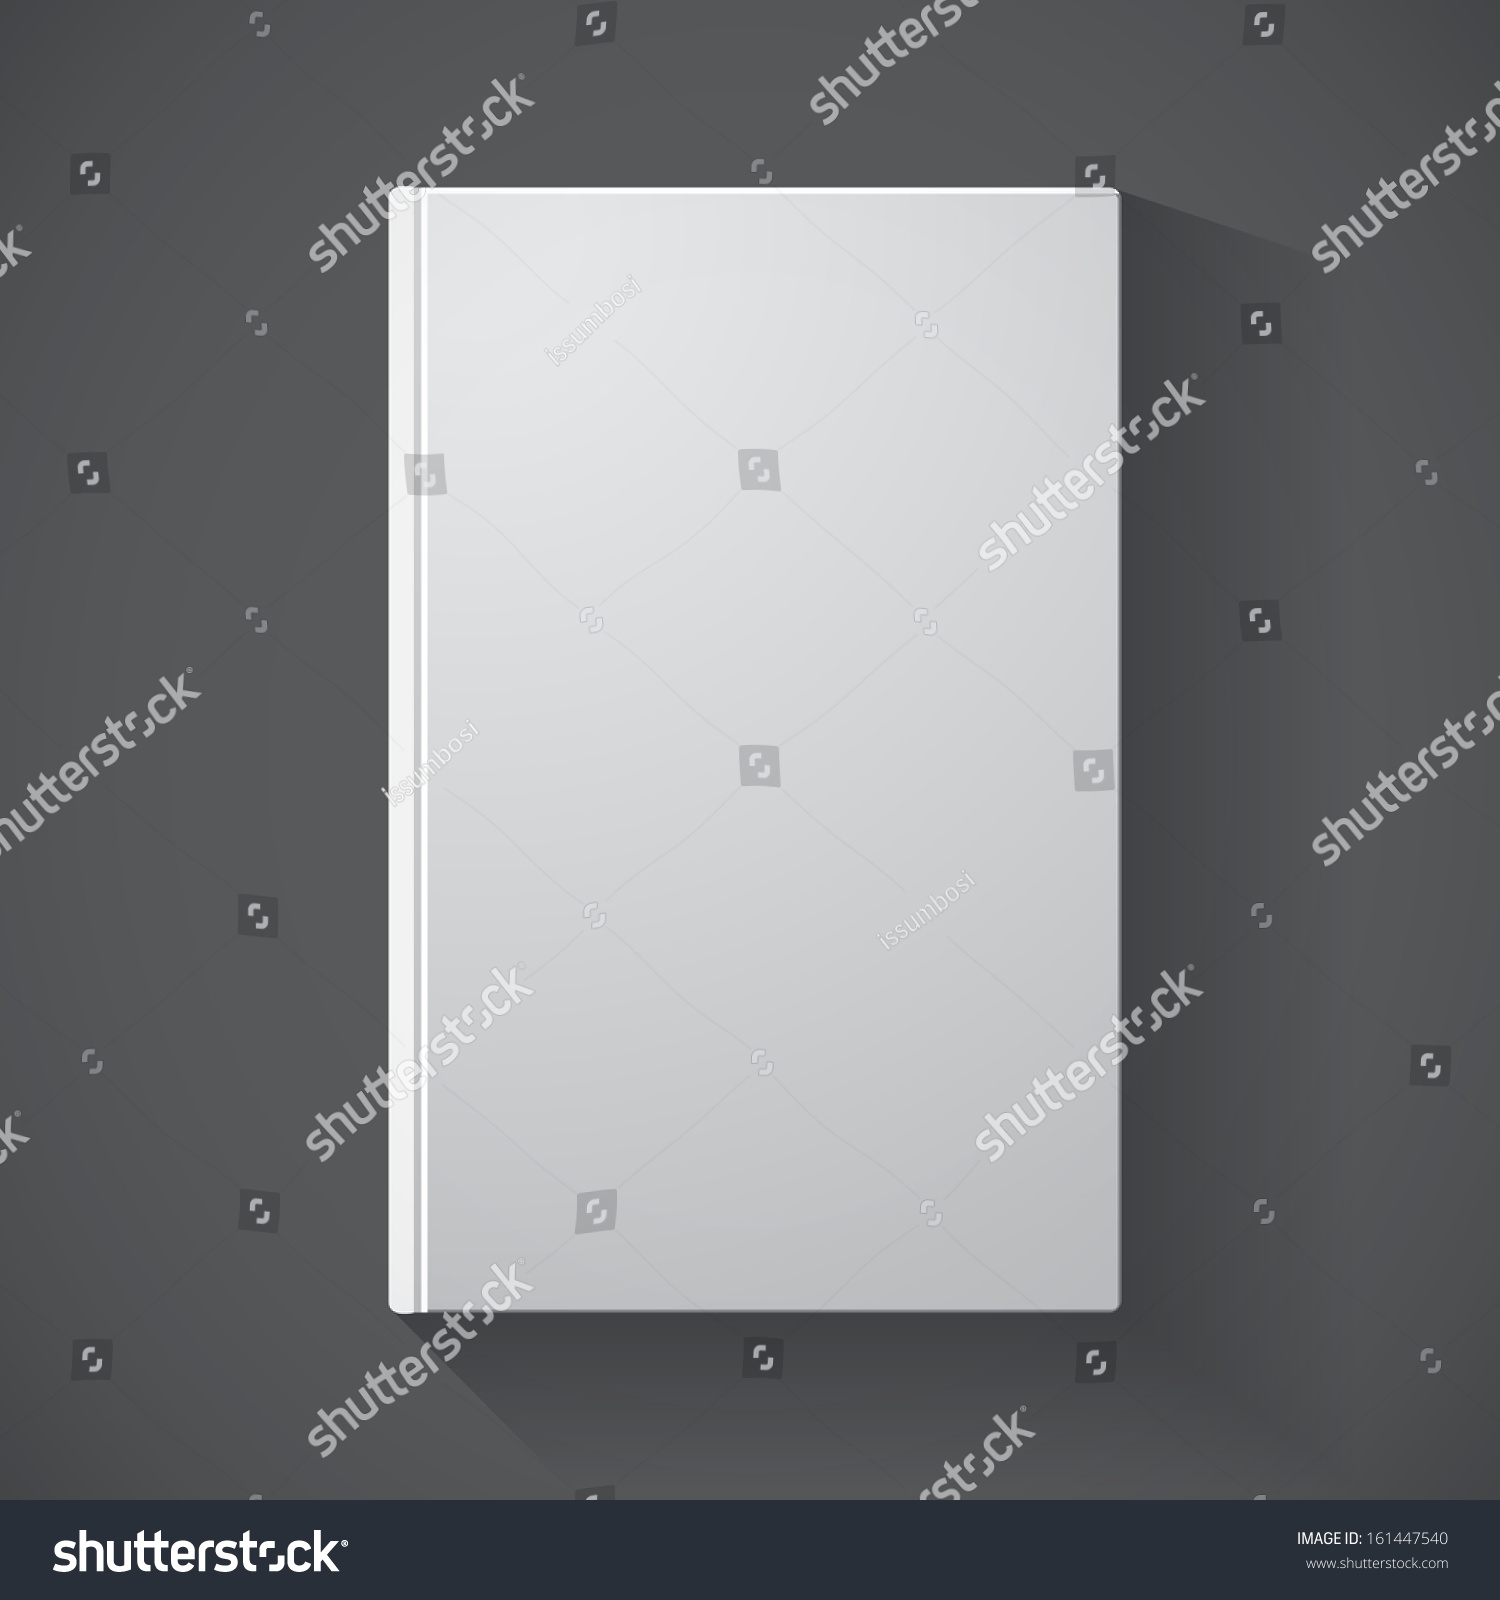 Blank Book Cover Background ~ Blank book cover on grey background stock vector